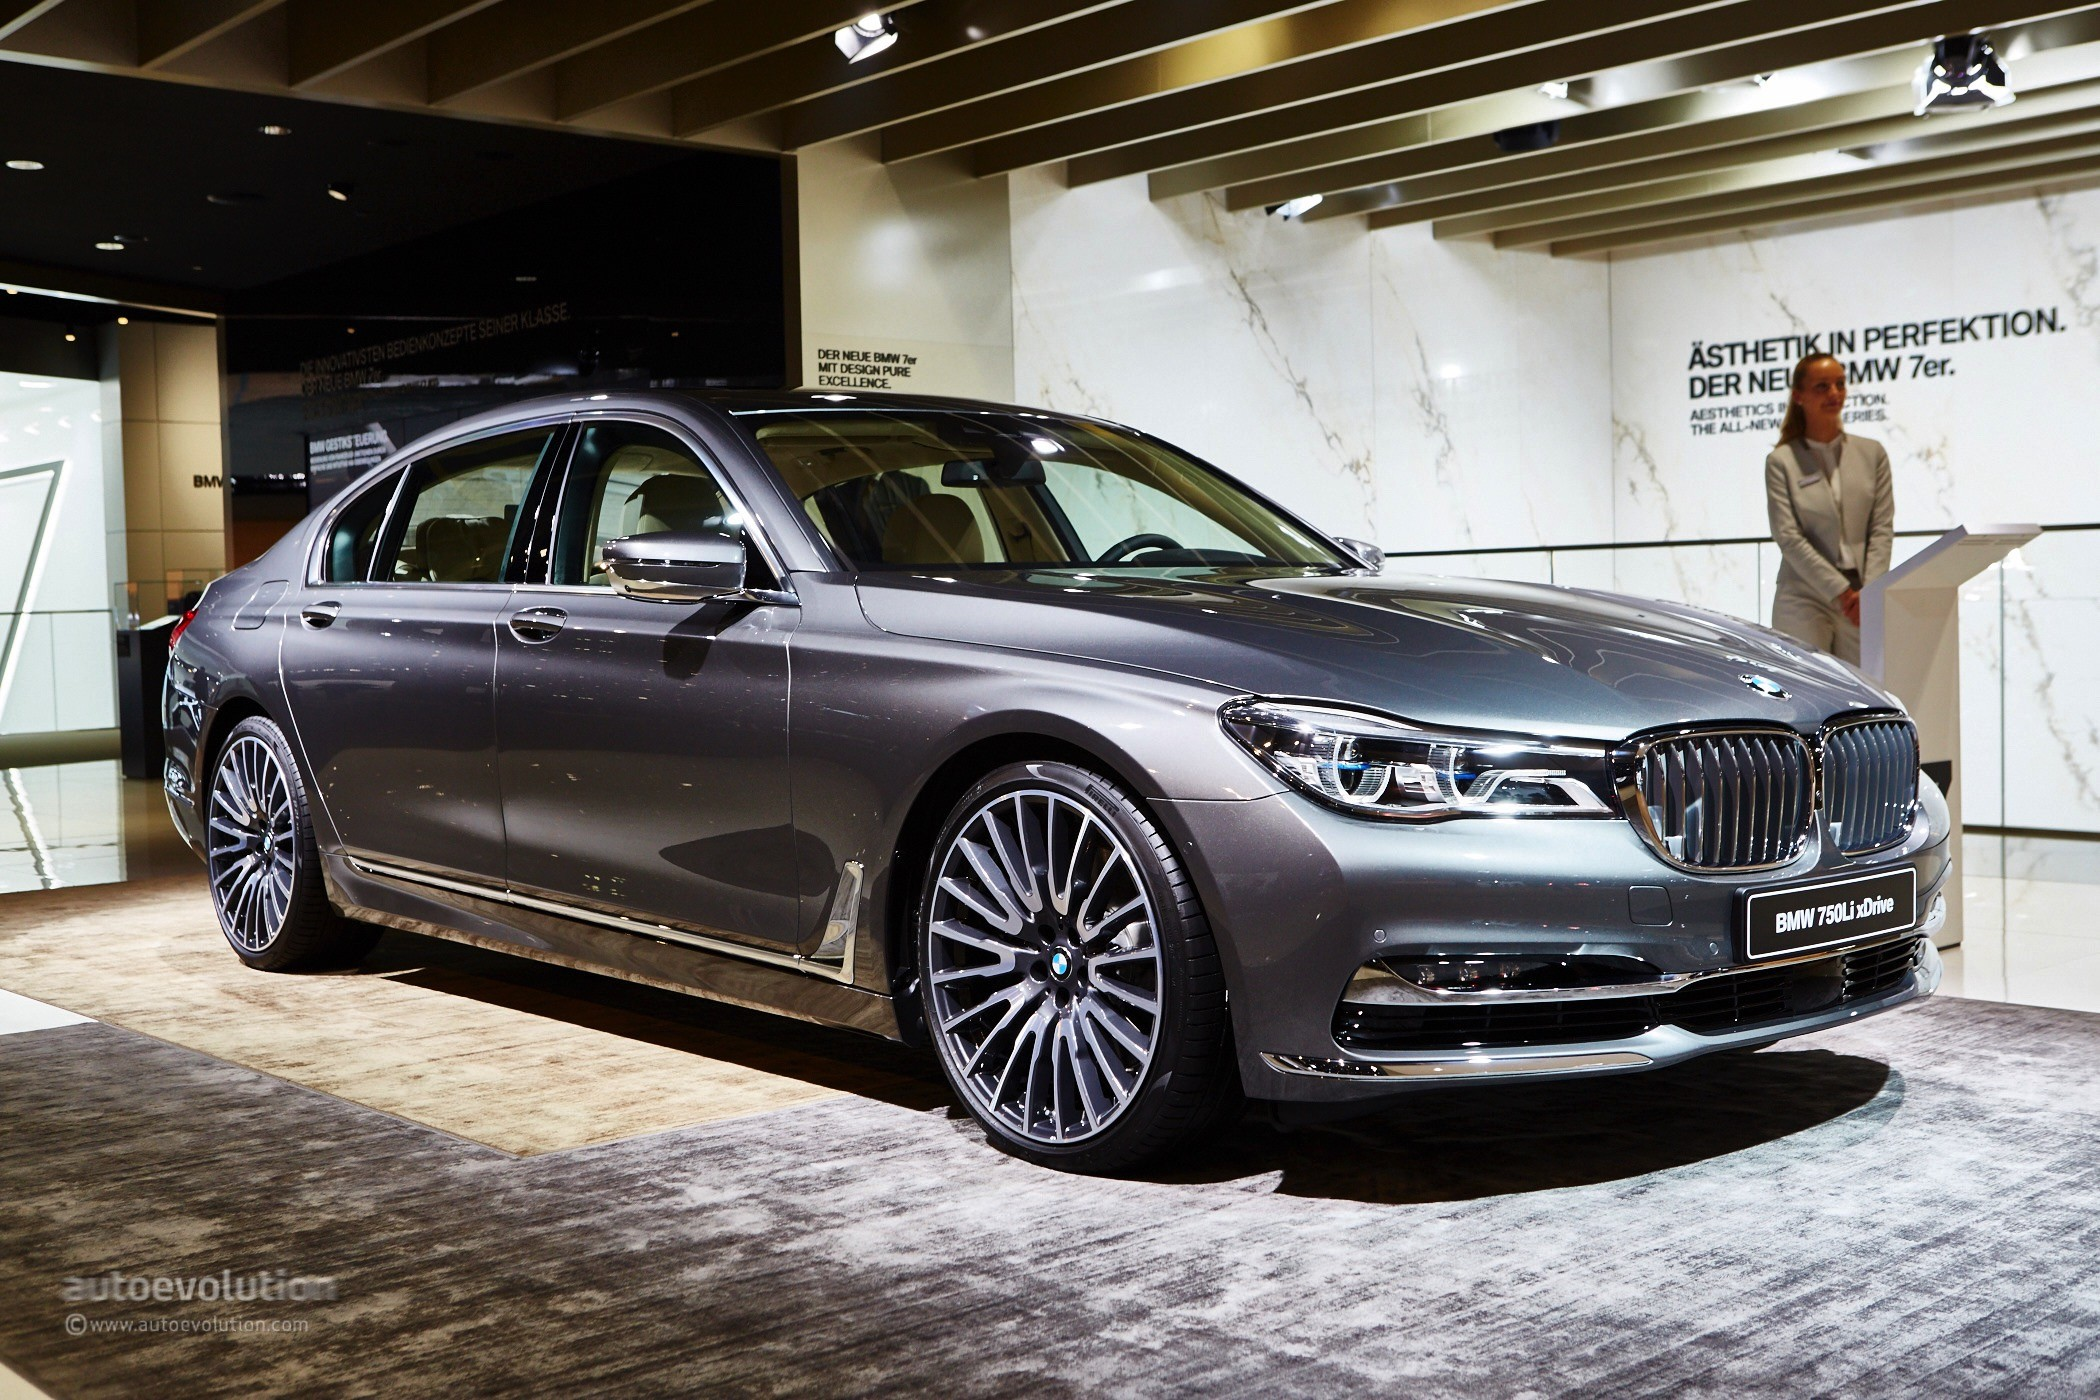 2016 bmw 7 series shows up in the metal at frankfurt celebrates world debut autoevolution. Black Bedroom Furniture Sets. Home Design Ideas